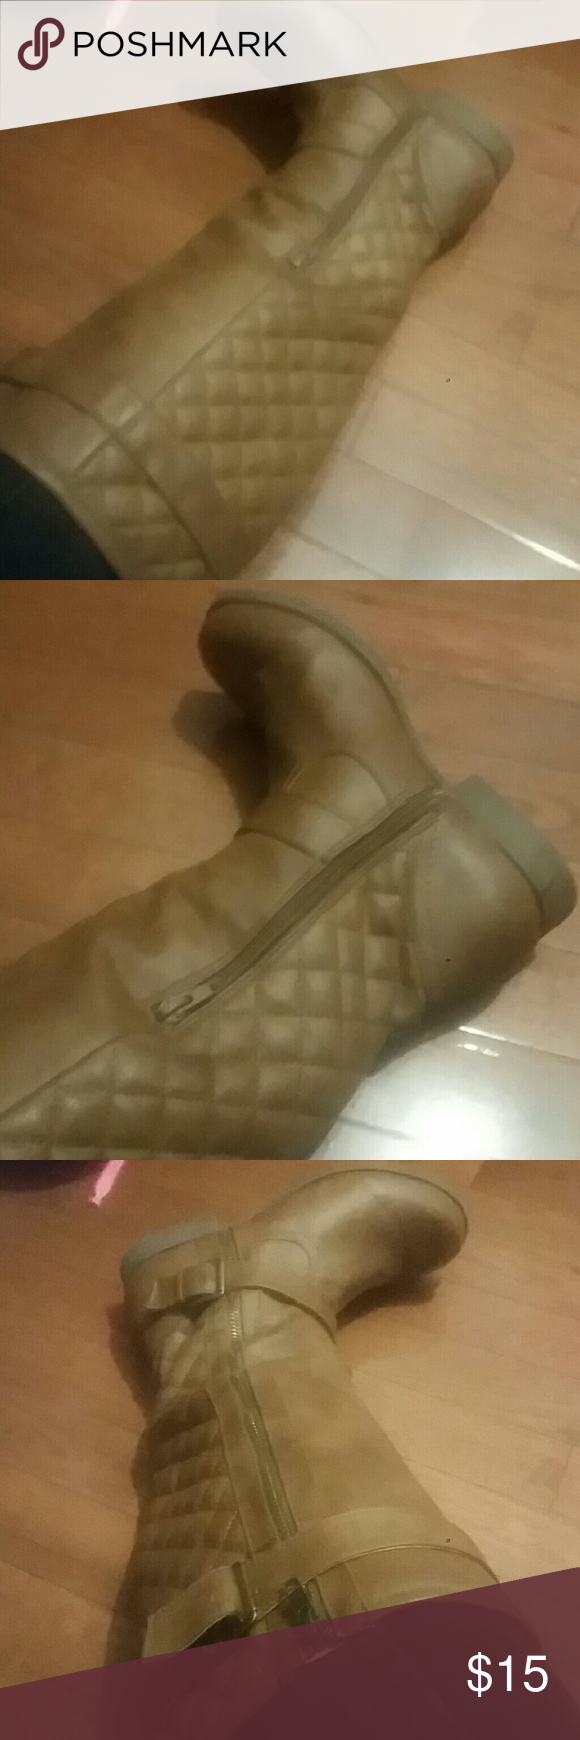 Cute brown boots Great condition Shoes